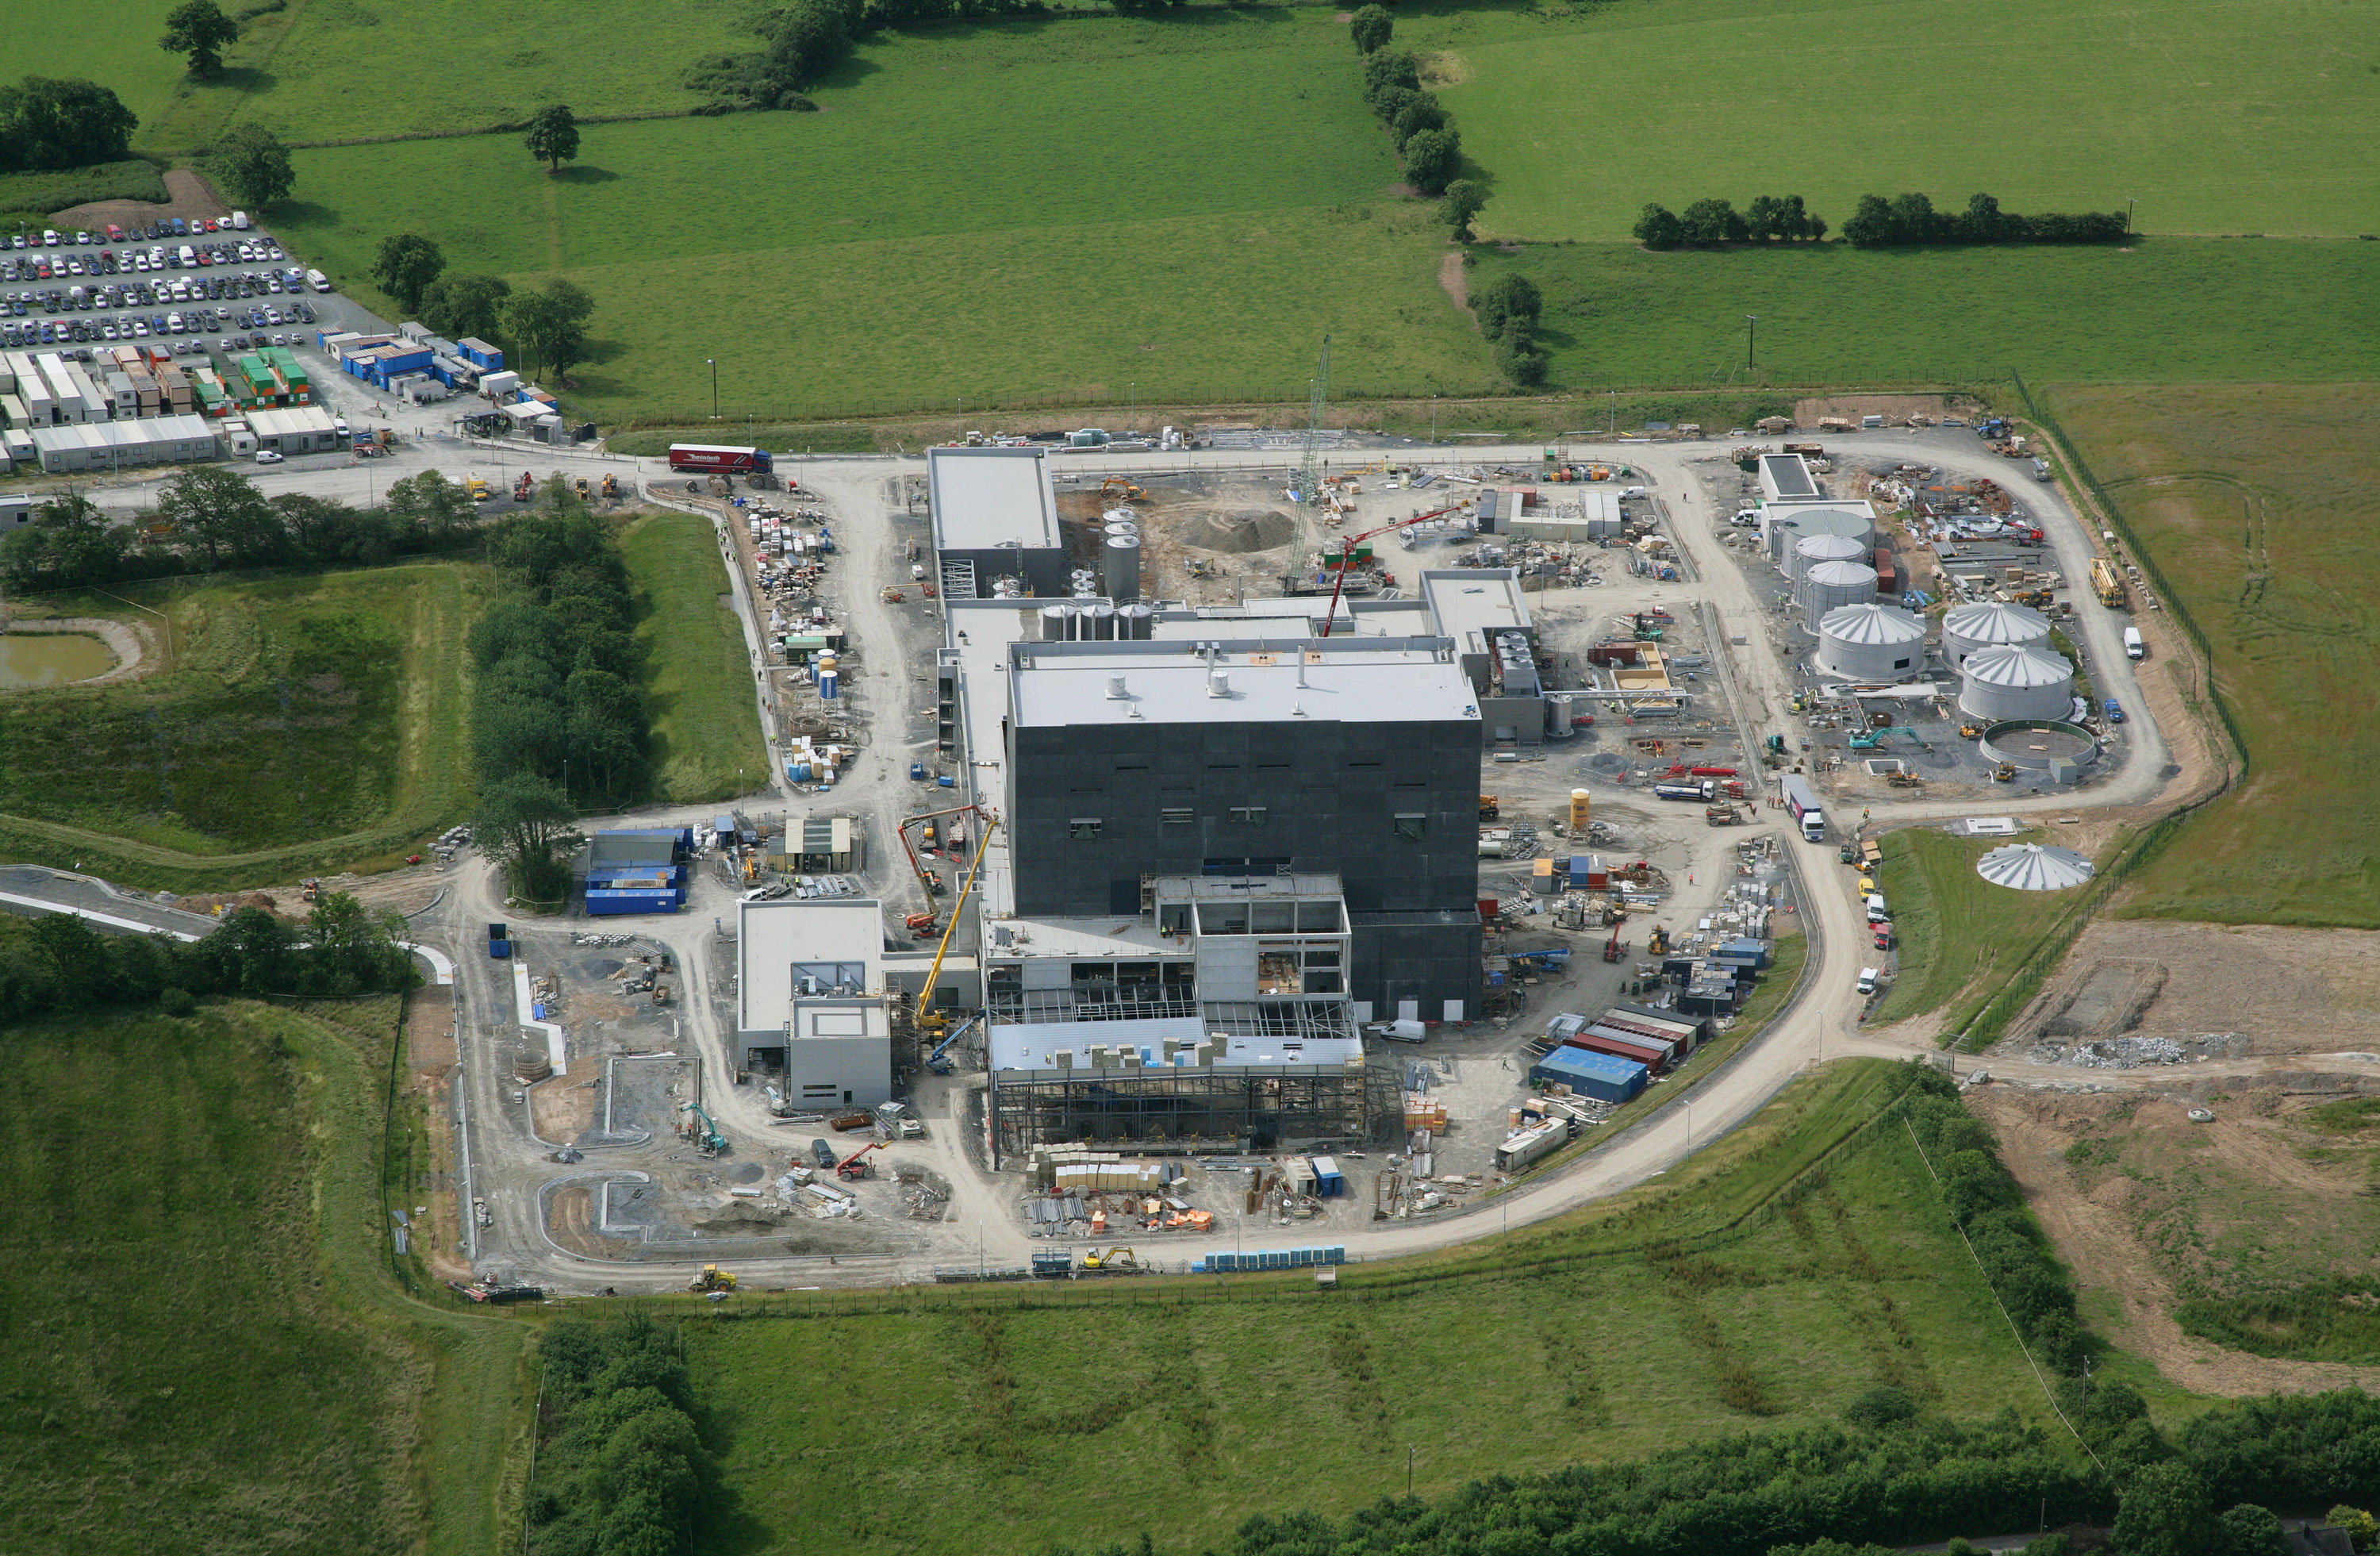 Glanbia New Dairy Processing Facility under construction